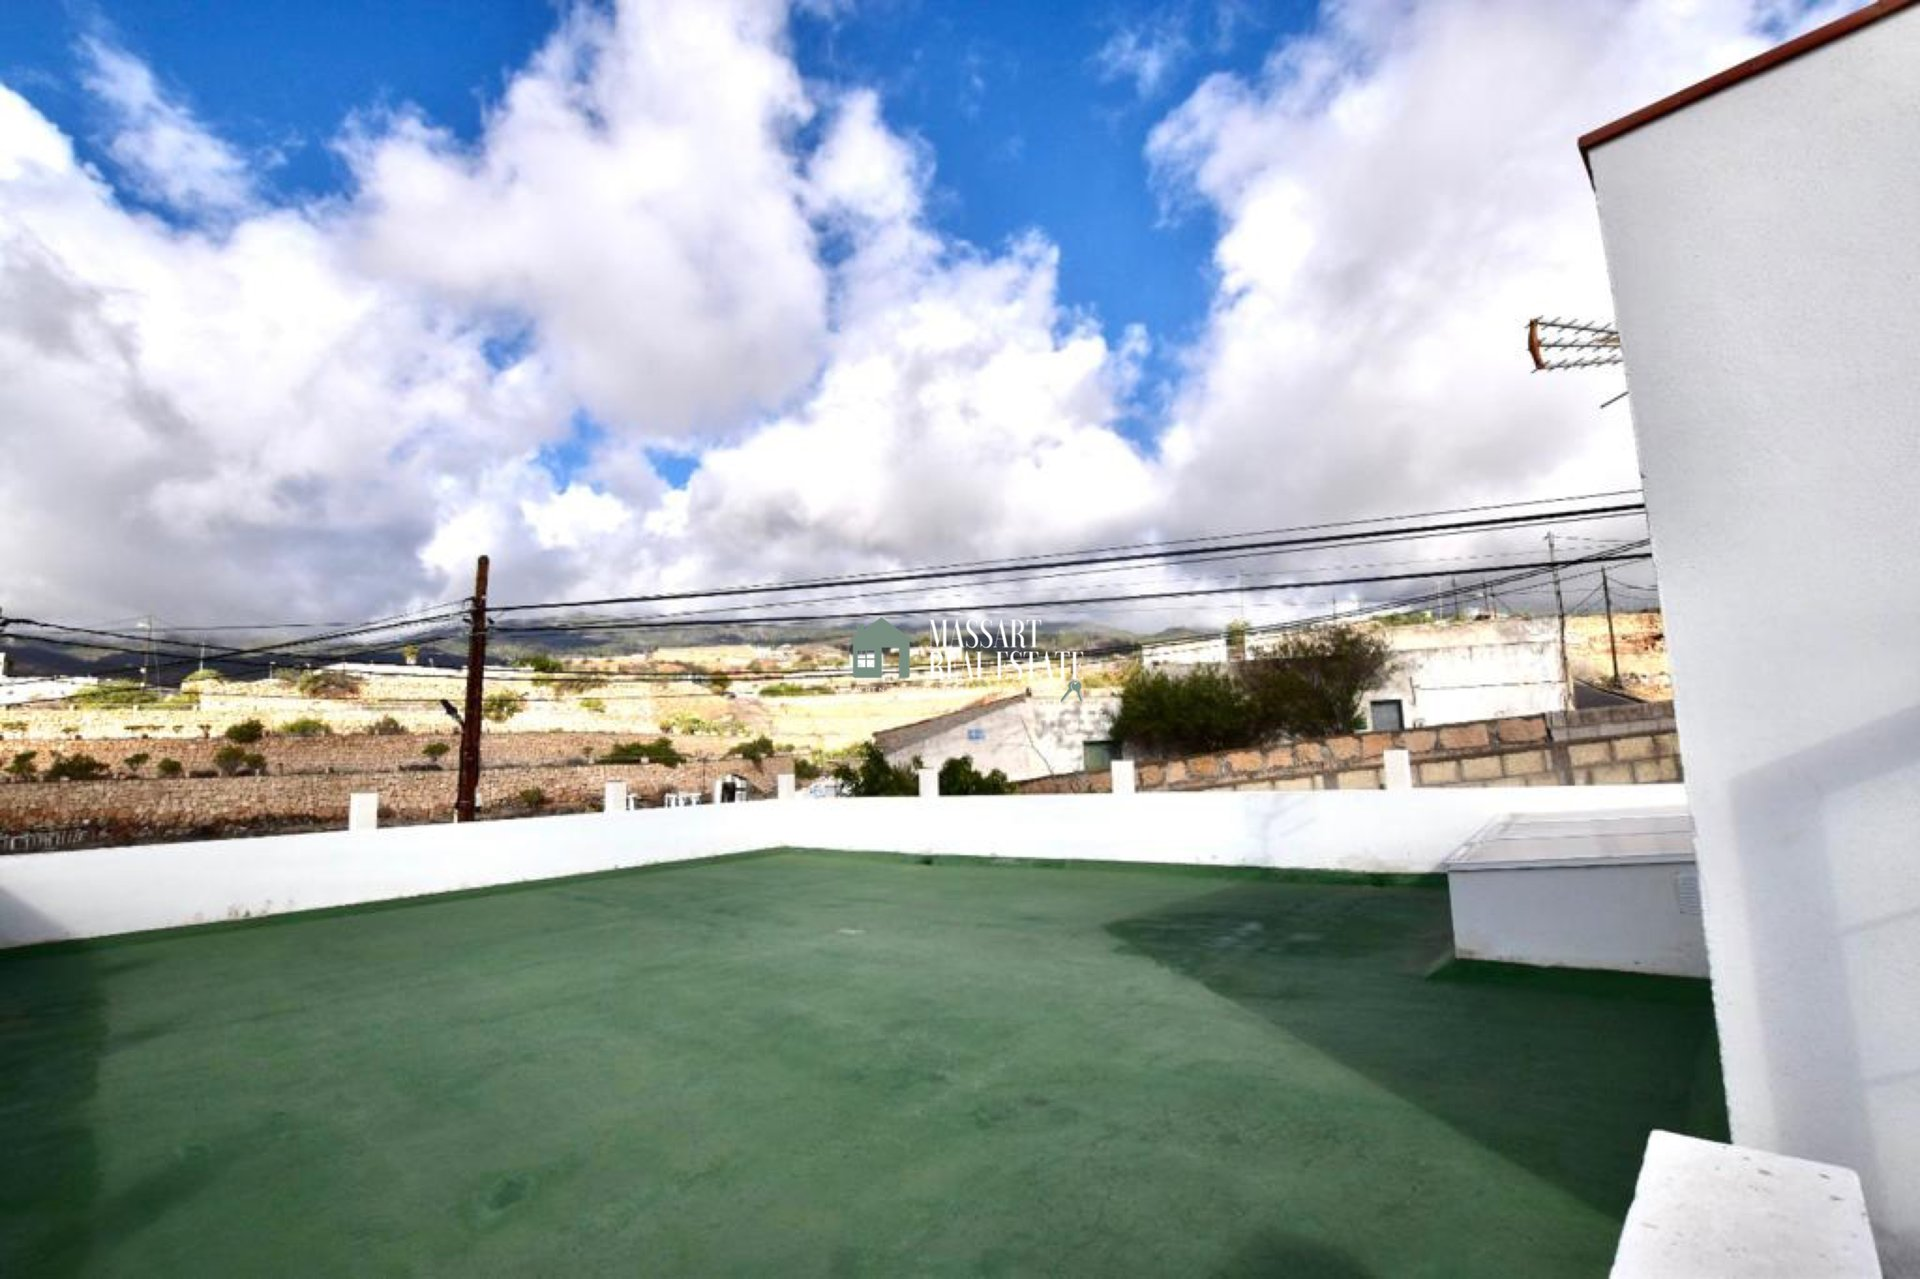 100 m2 loft-style house located on a 300 m2 plot in Granadilla de Abona… waiting to be finished and customized to your liking!